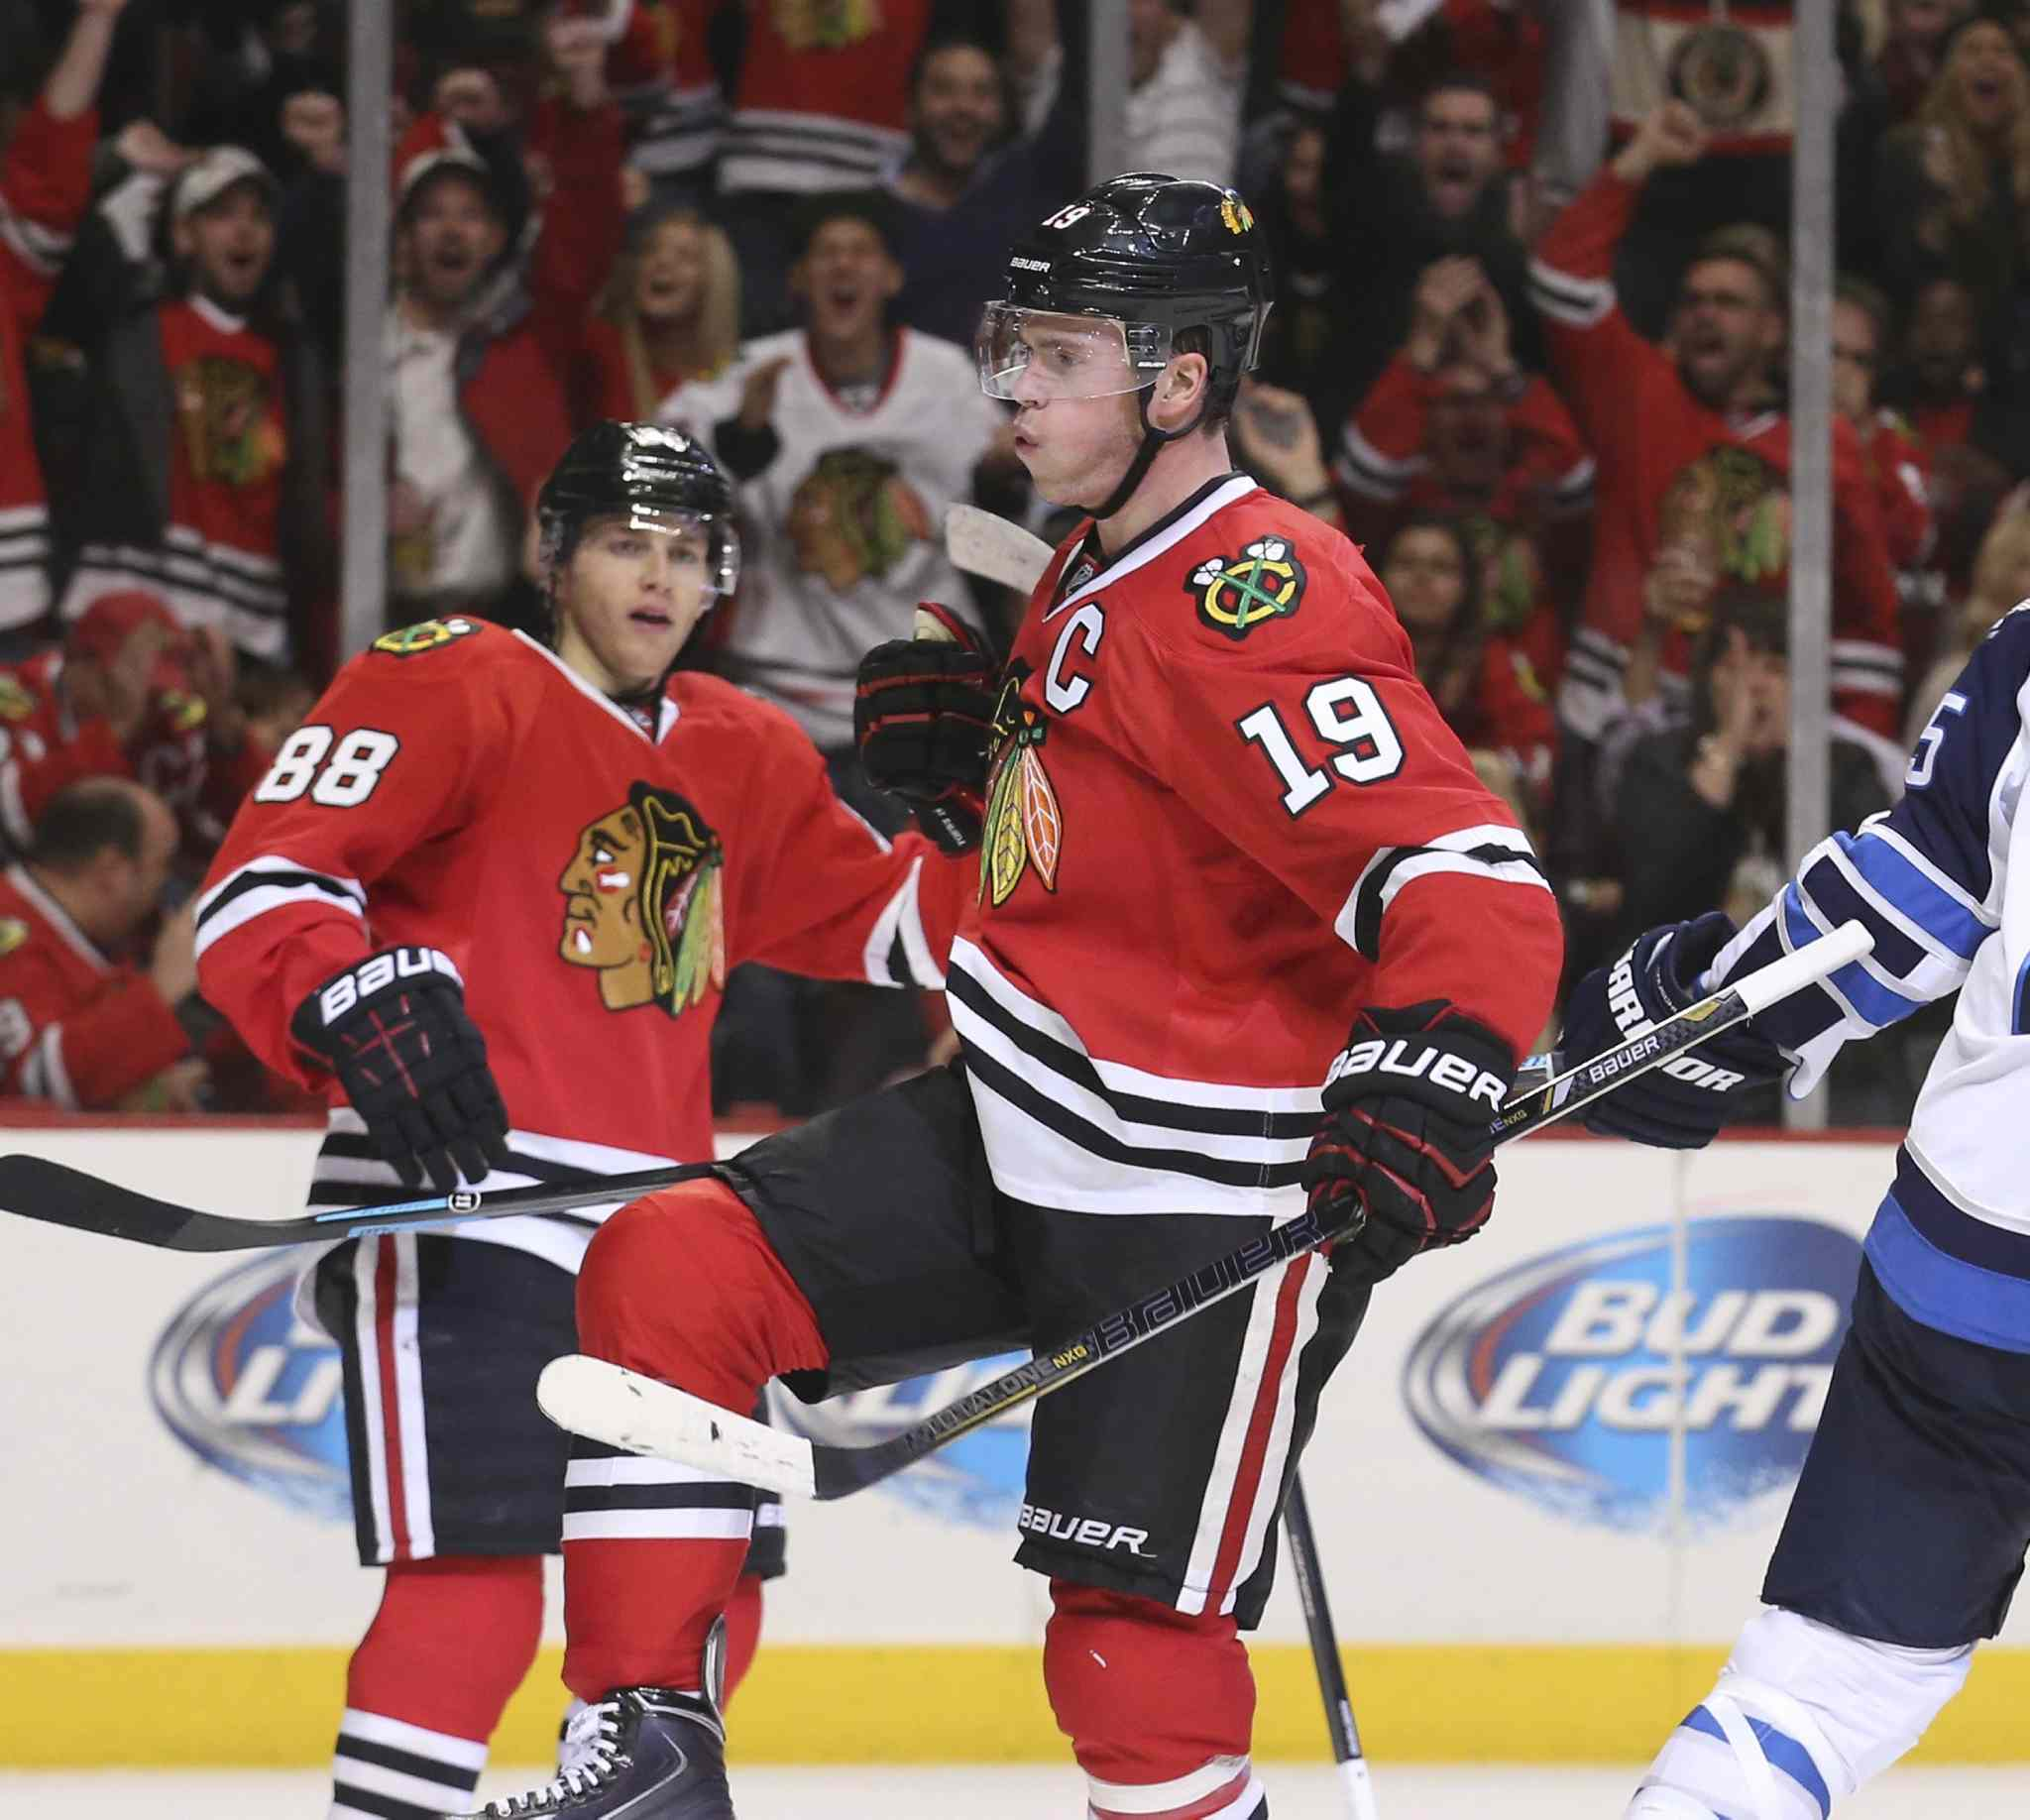 Jonathan Toews (19) of the Chicago Blackhawks celebrates his goal against the Winnipeg Jets during the first period.